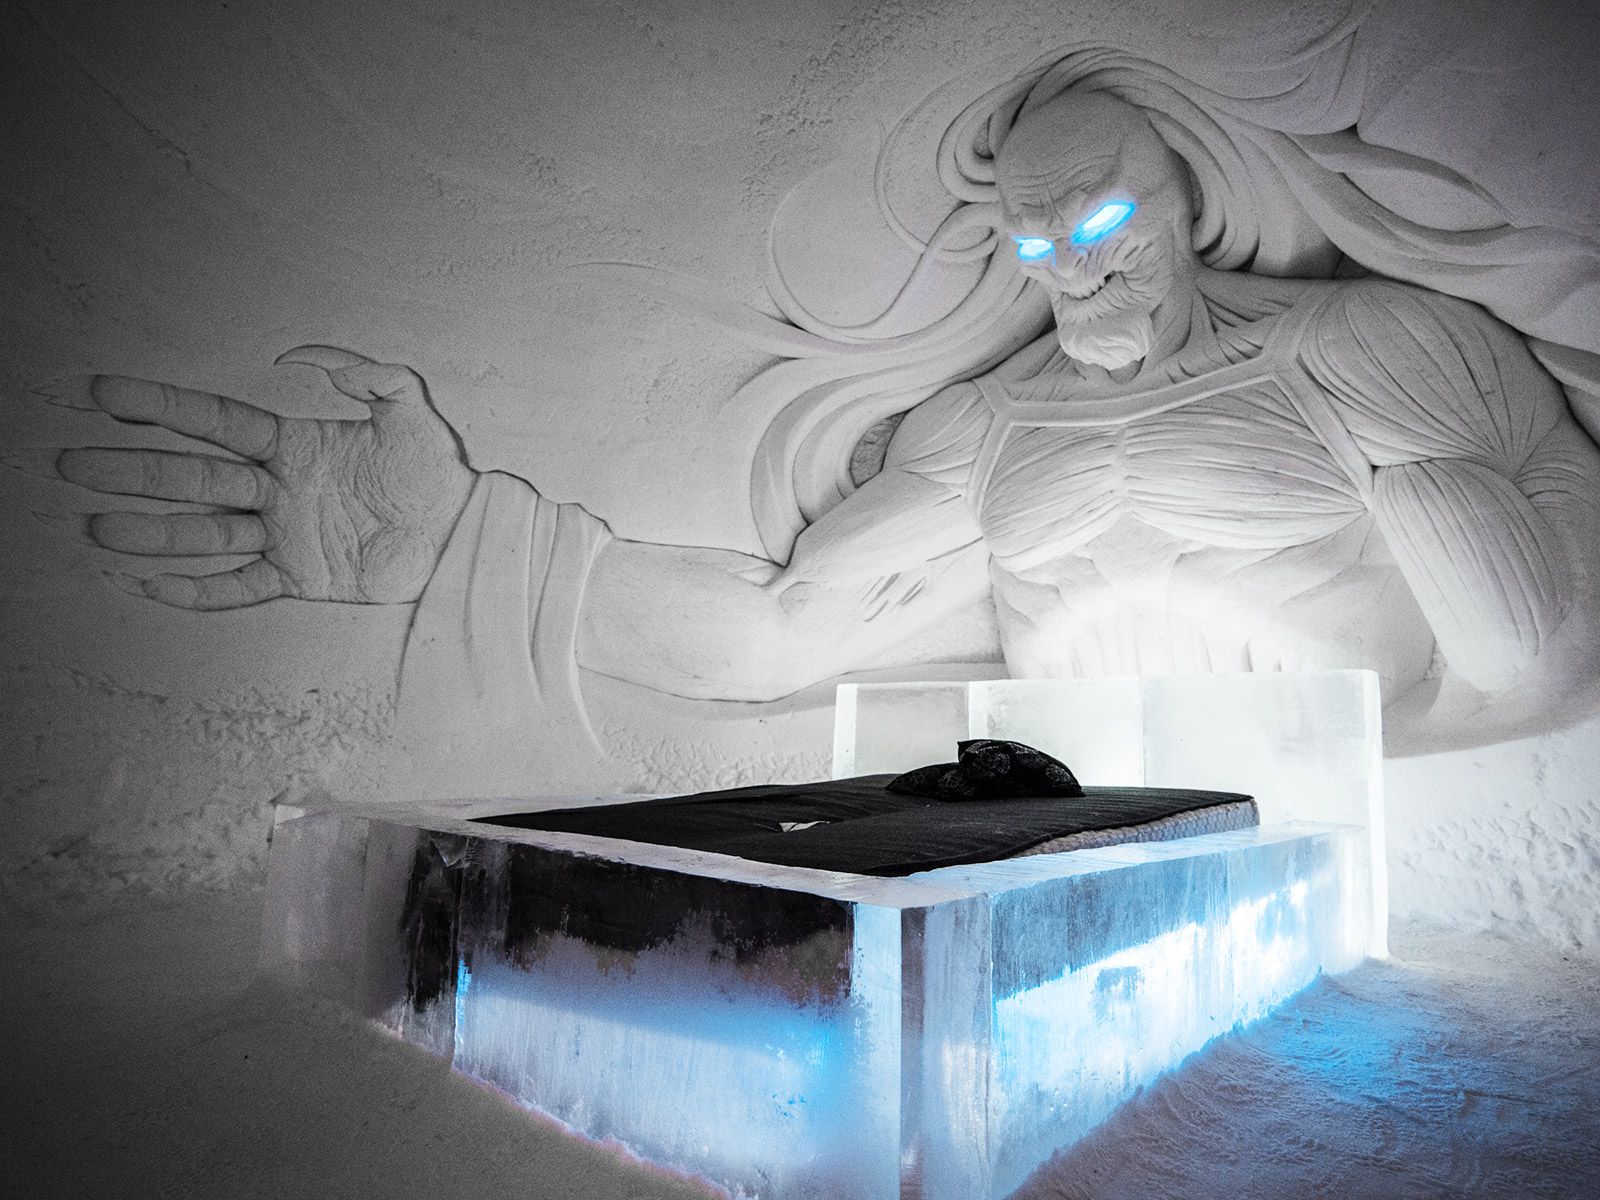 game of thrones hotel room with white walker